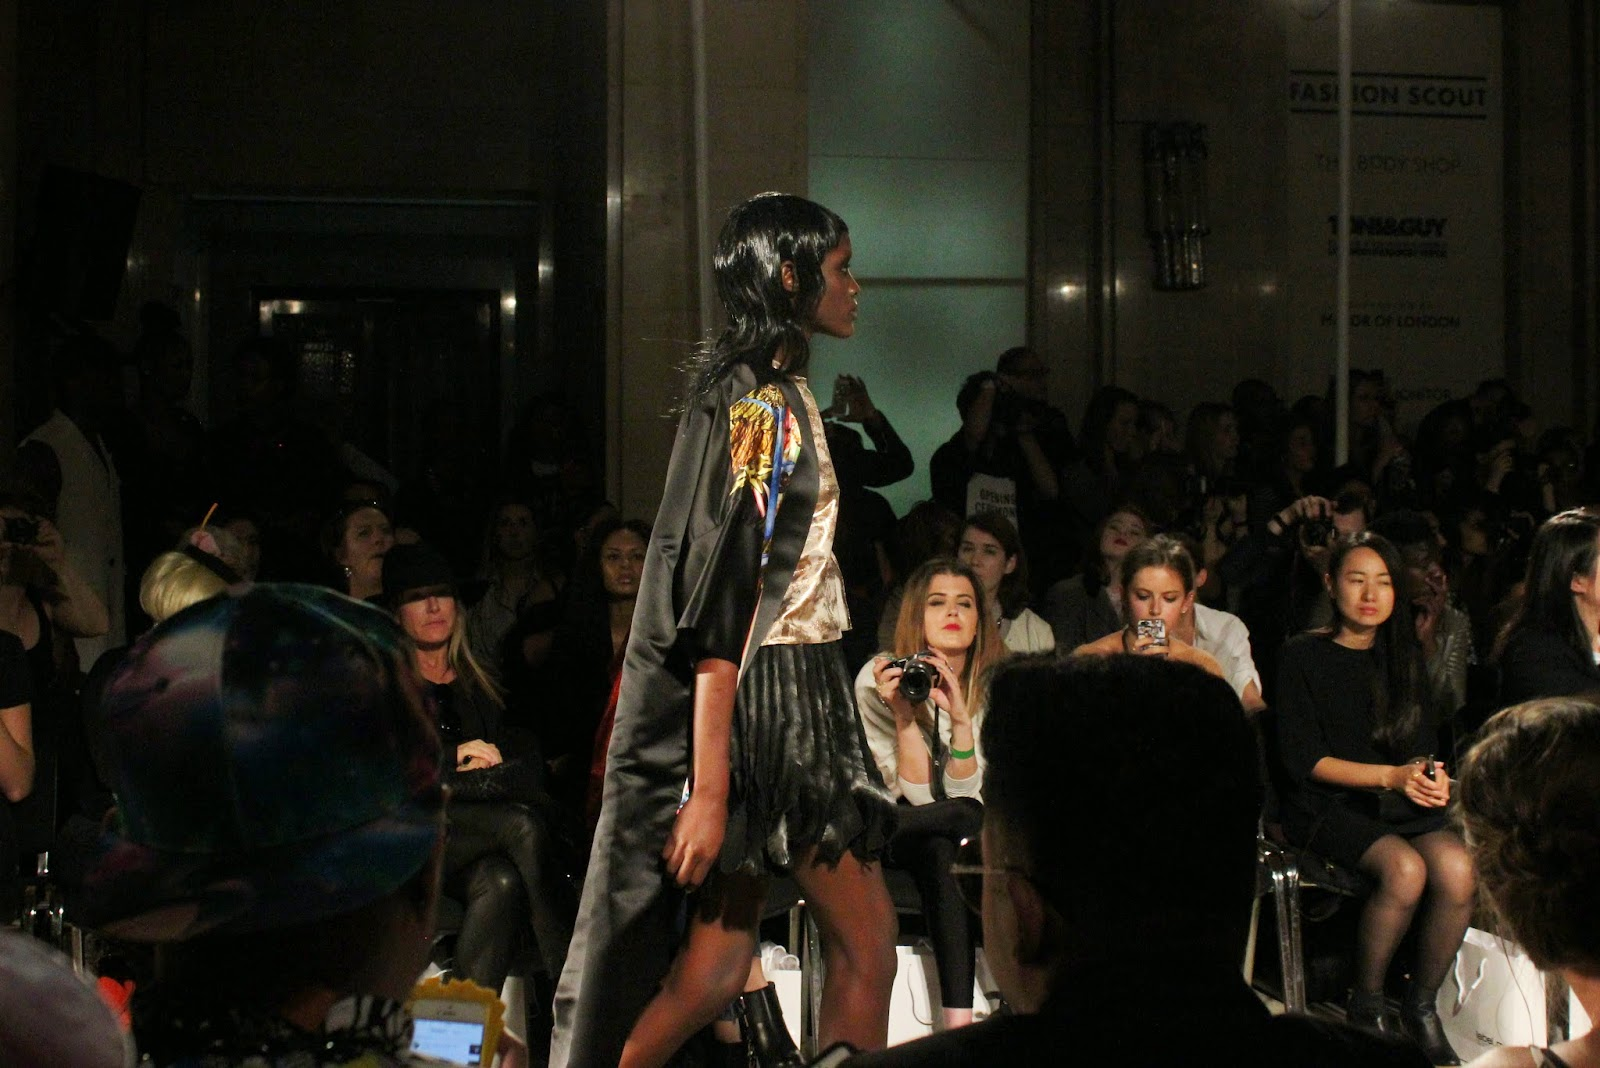 london-fashion-week-2014-lfw-spring-summer-2015-blogger-fashion-Dora-Abodi-catwalk-models-freemasons hall-fashion-scout-dress